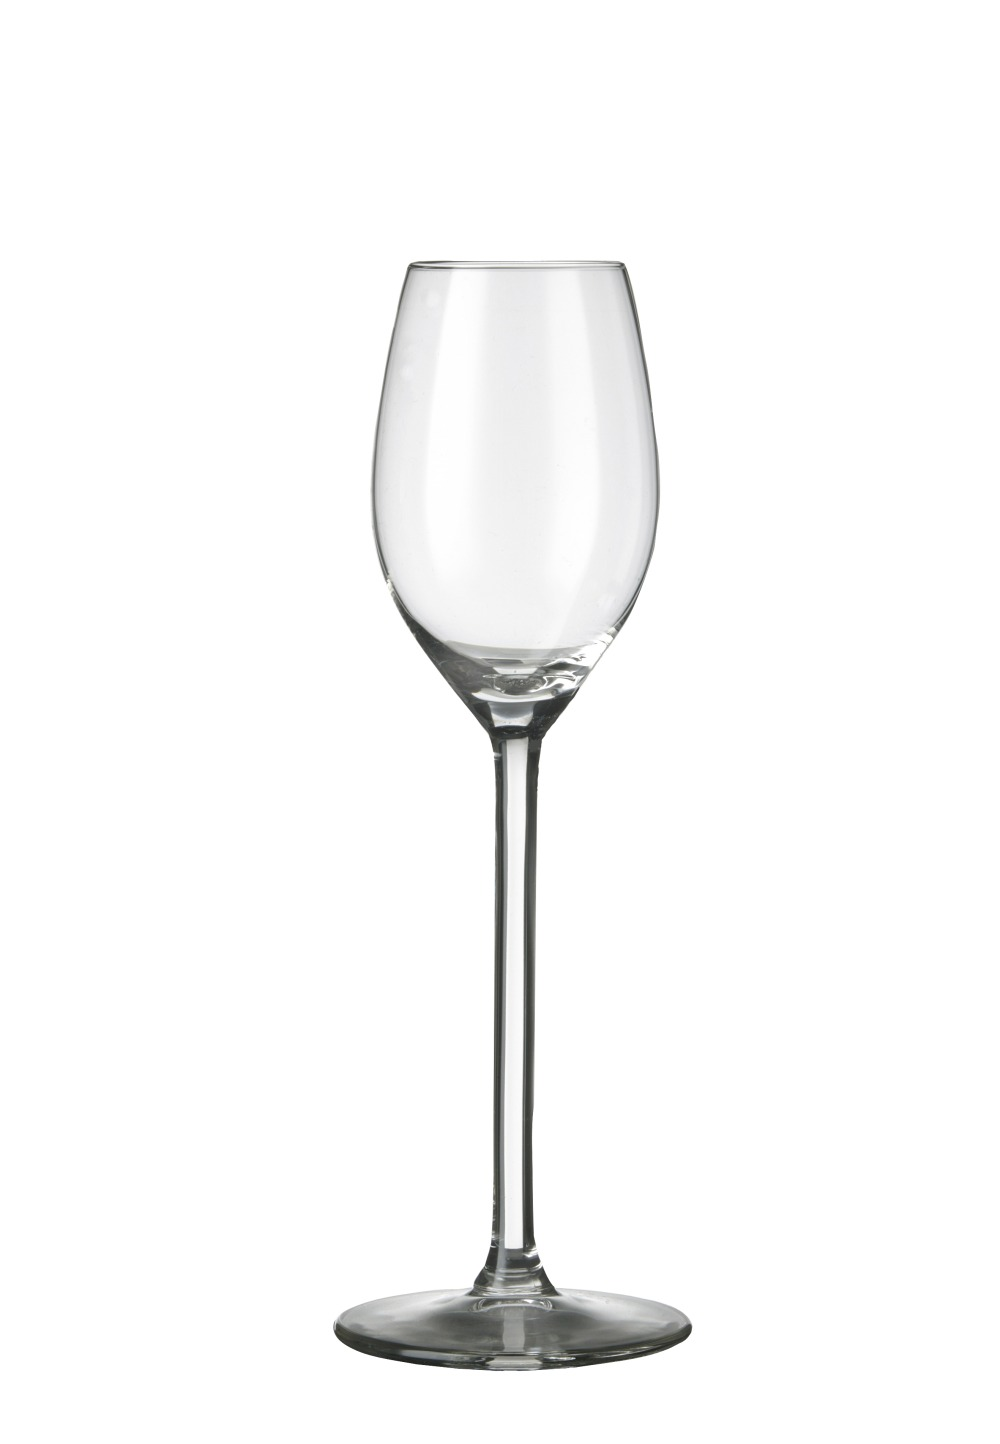 royal_leerdam_wijnglas_allure_32cl.jpg